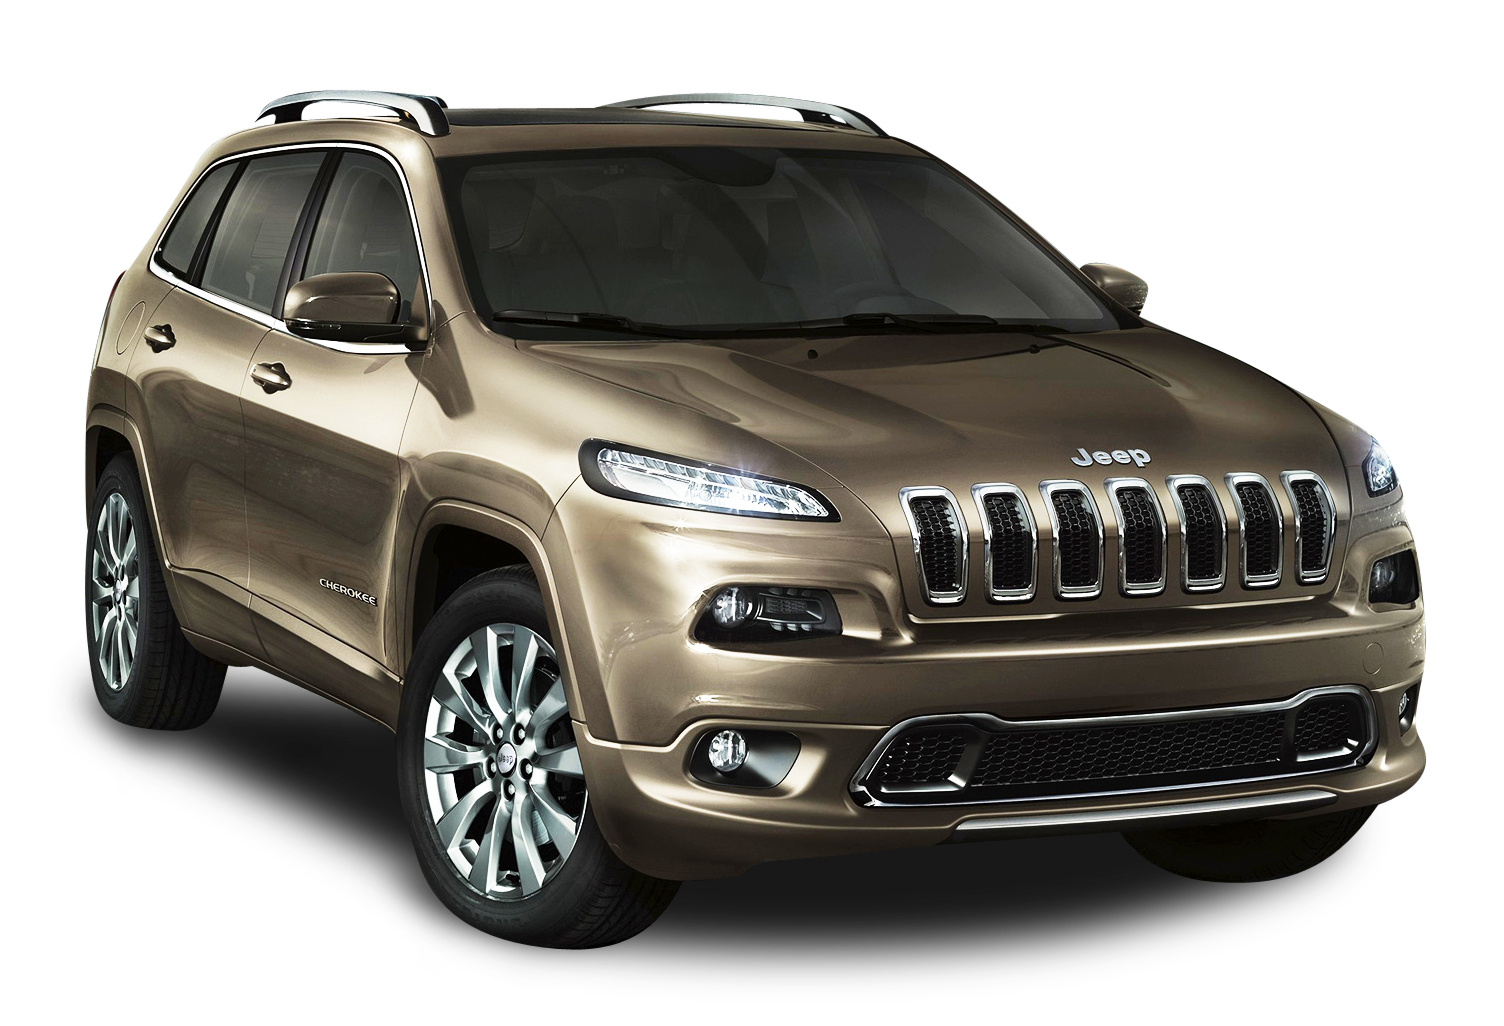 Jeep grand cherokee png. Suv chocolate car image